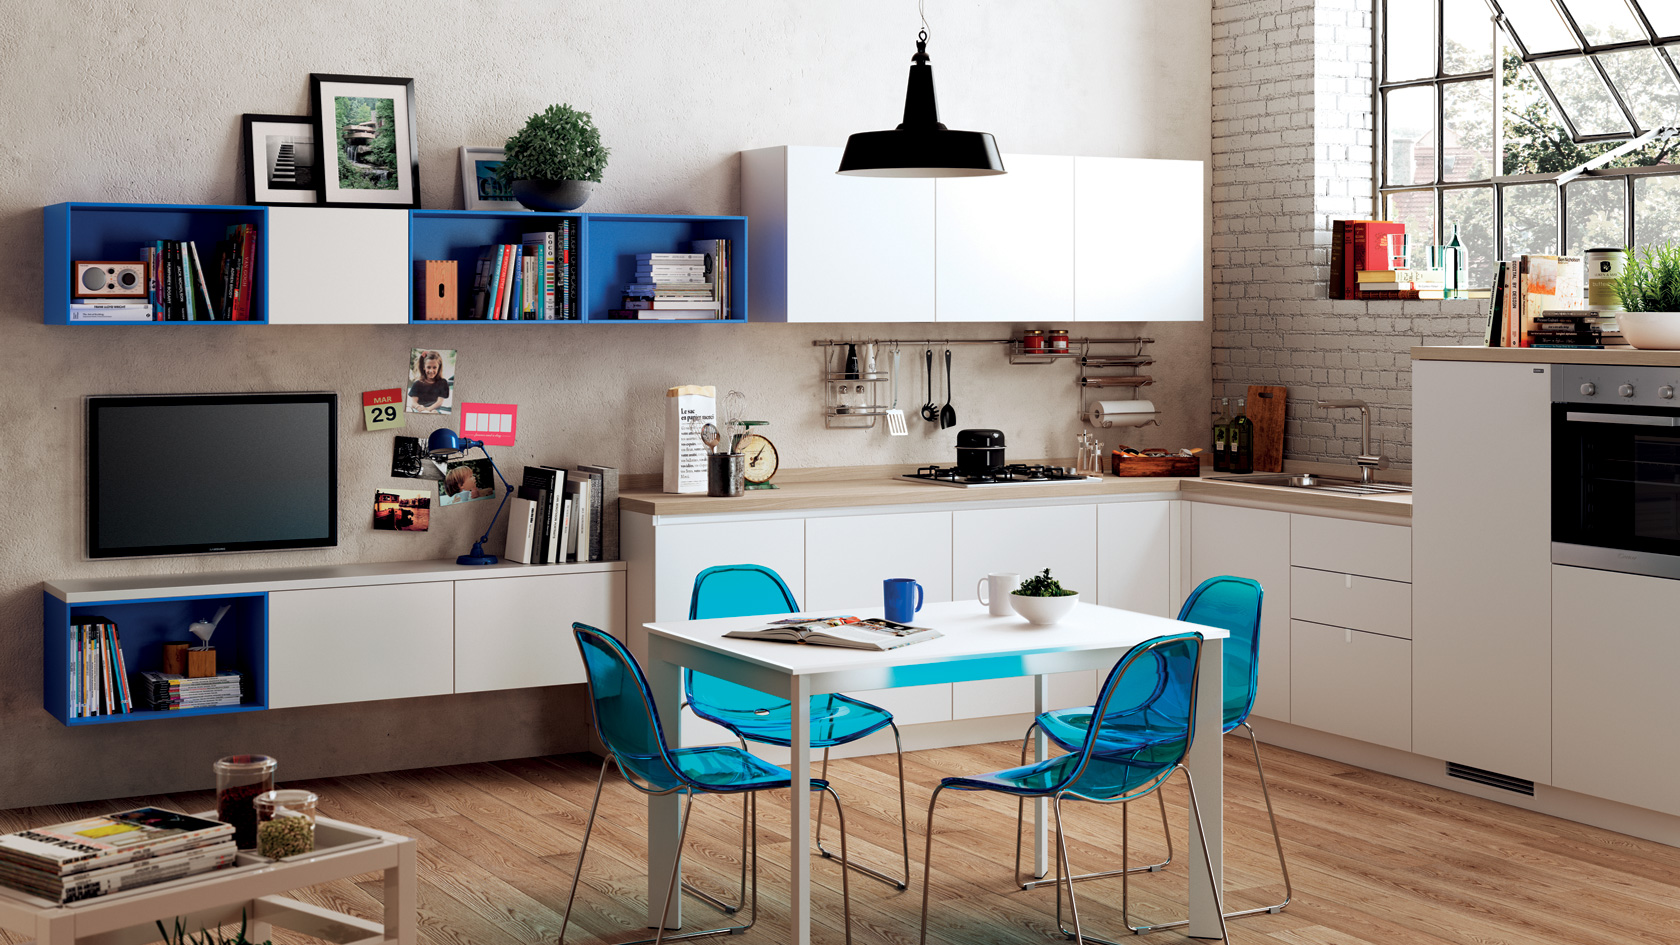 Living - sala de estar - salon Easy de Scavolini